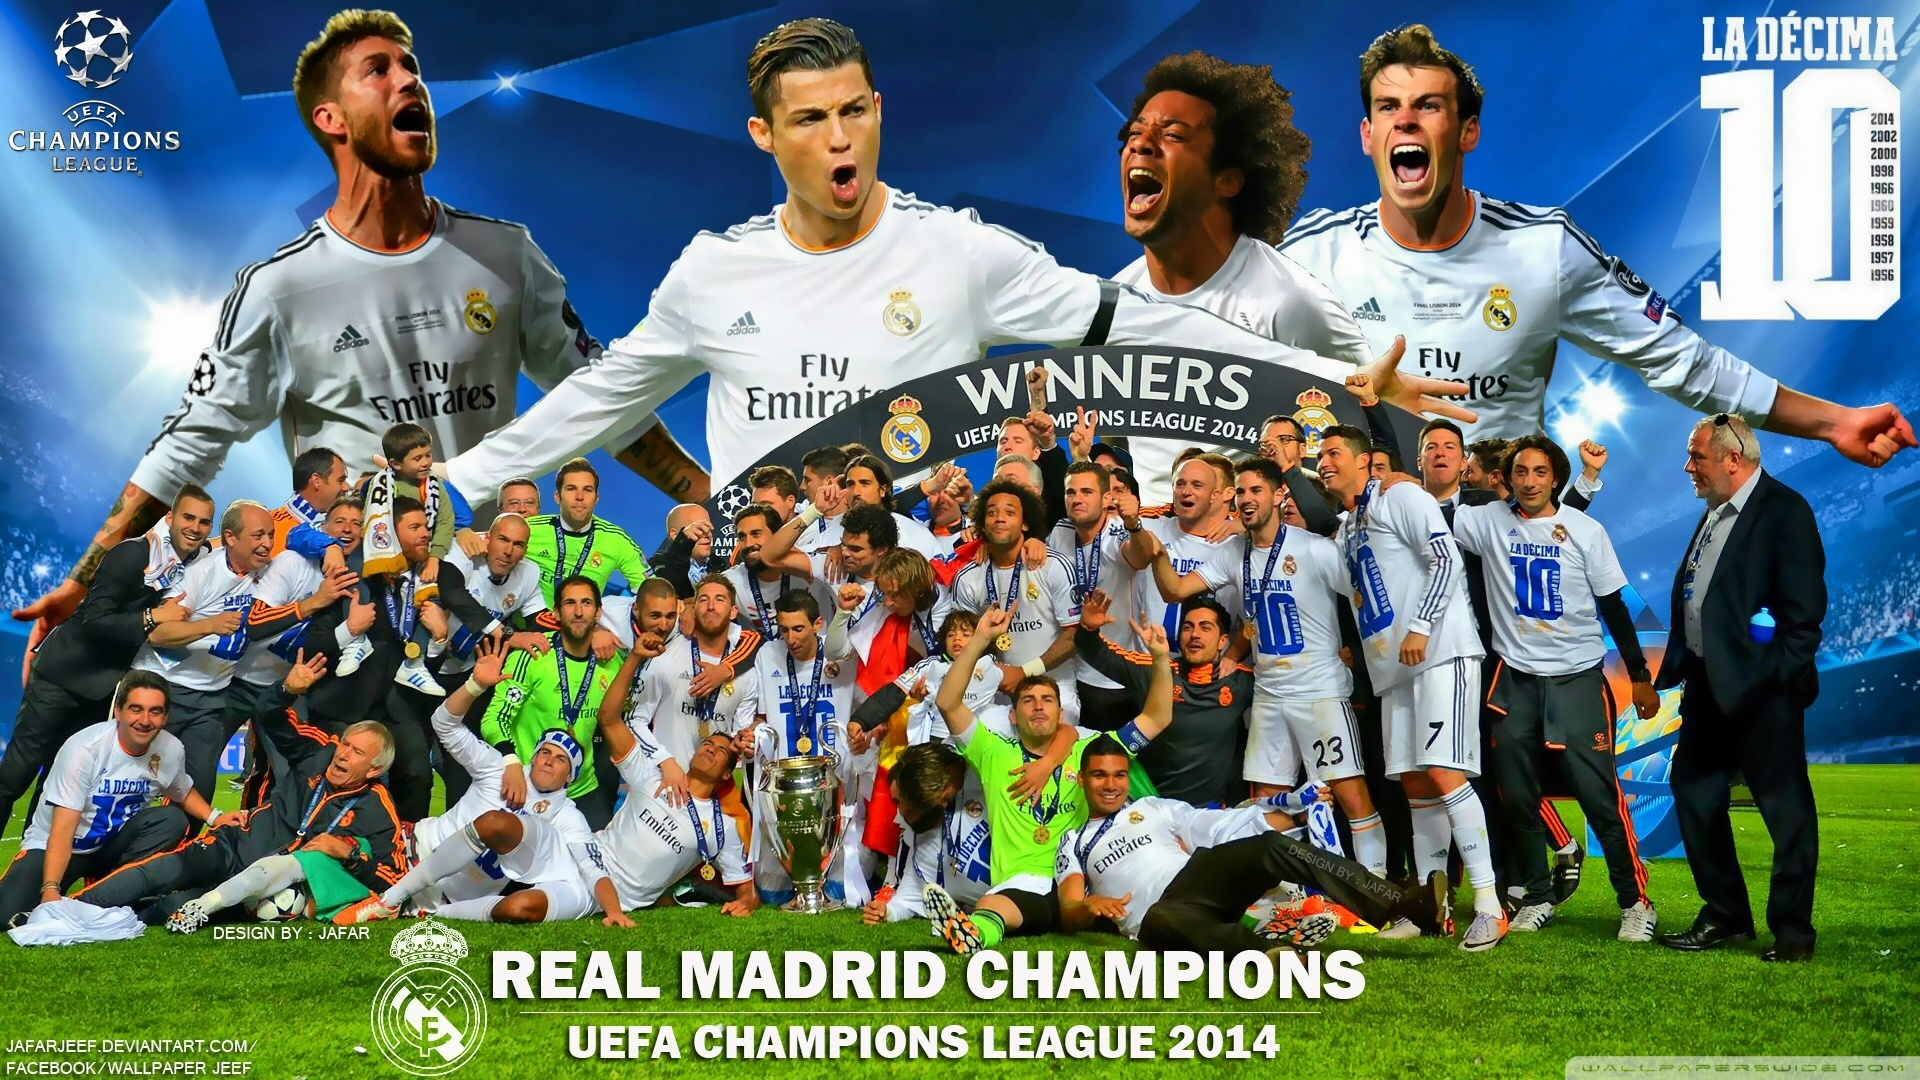 real madrid winners champions league 2014 hd desktop wallpaper